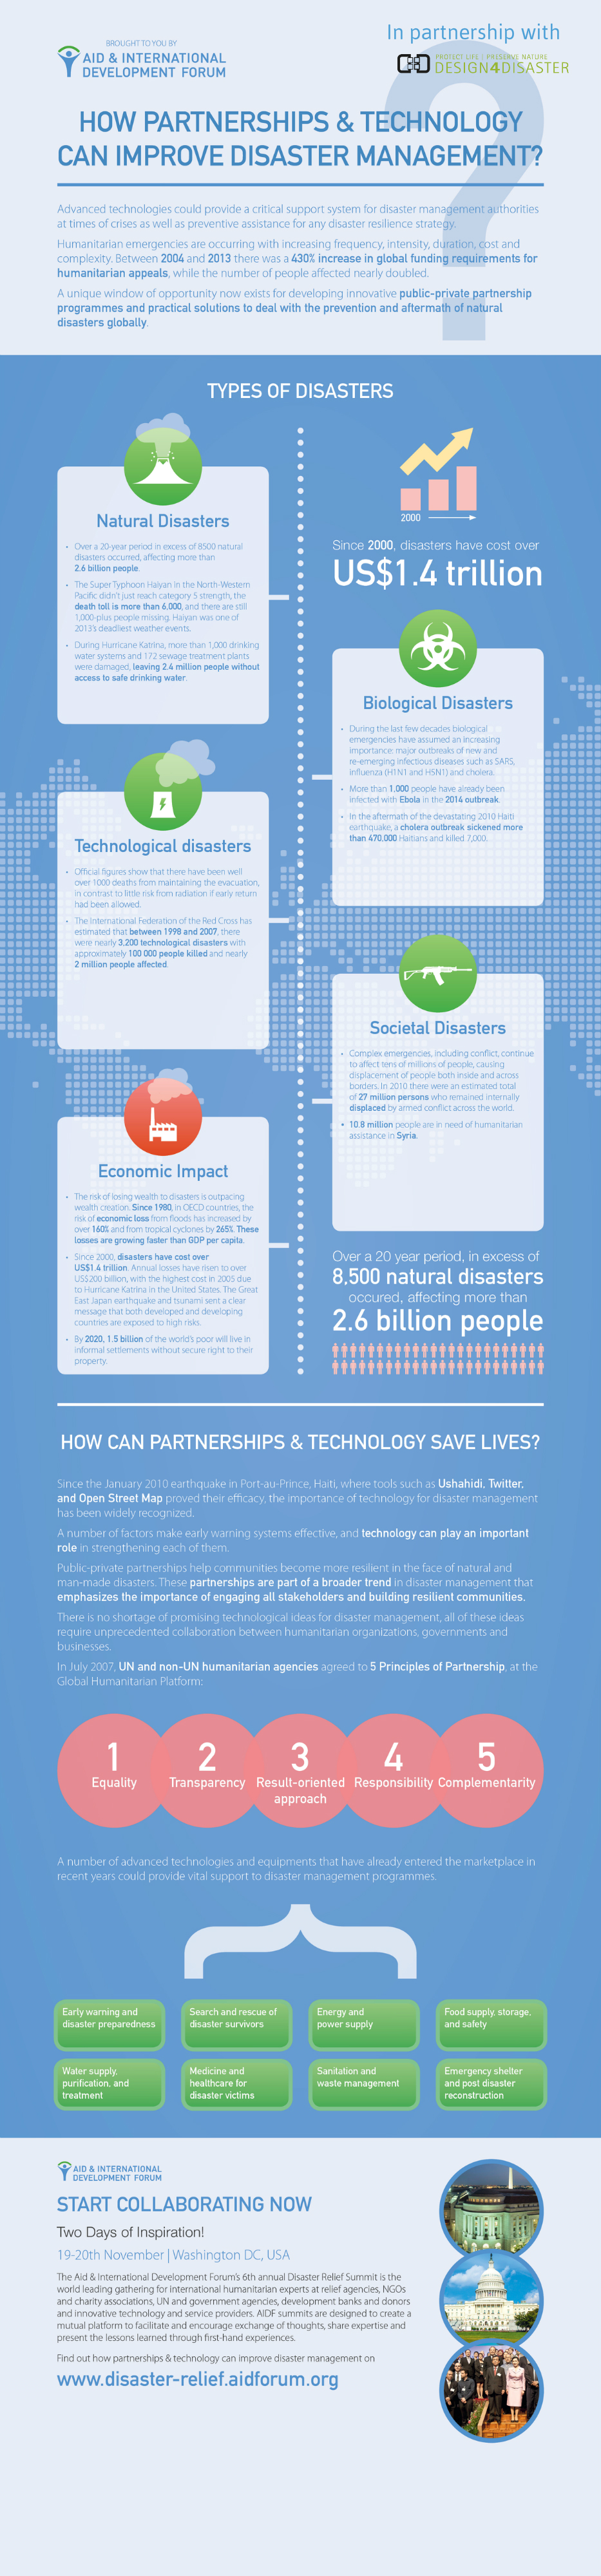 AIDF DISASTER RELIEF INFOGRAPHIC (D4D-edition)